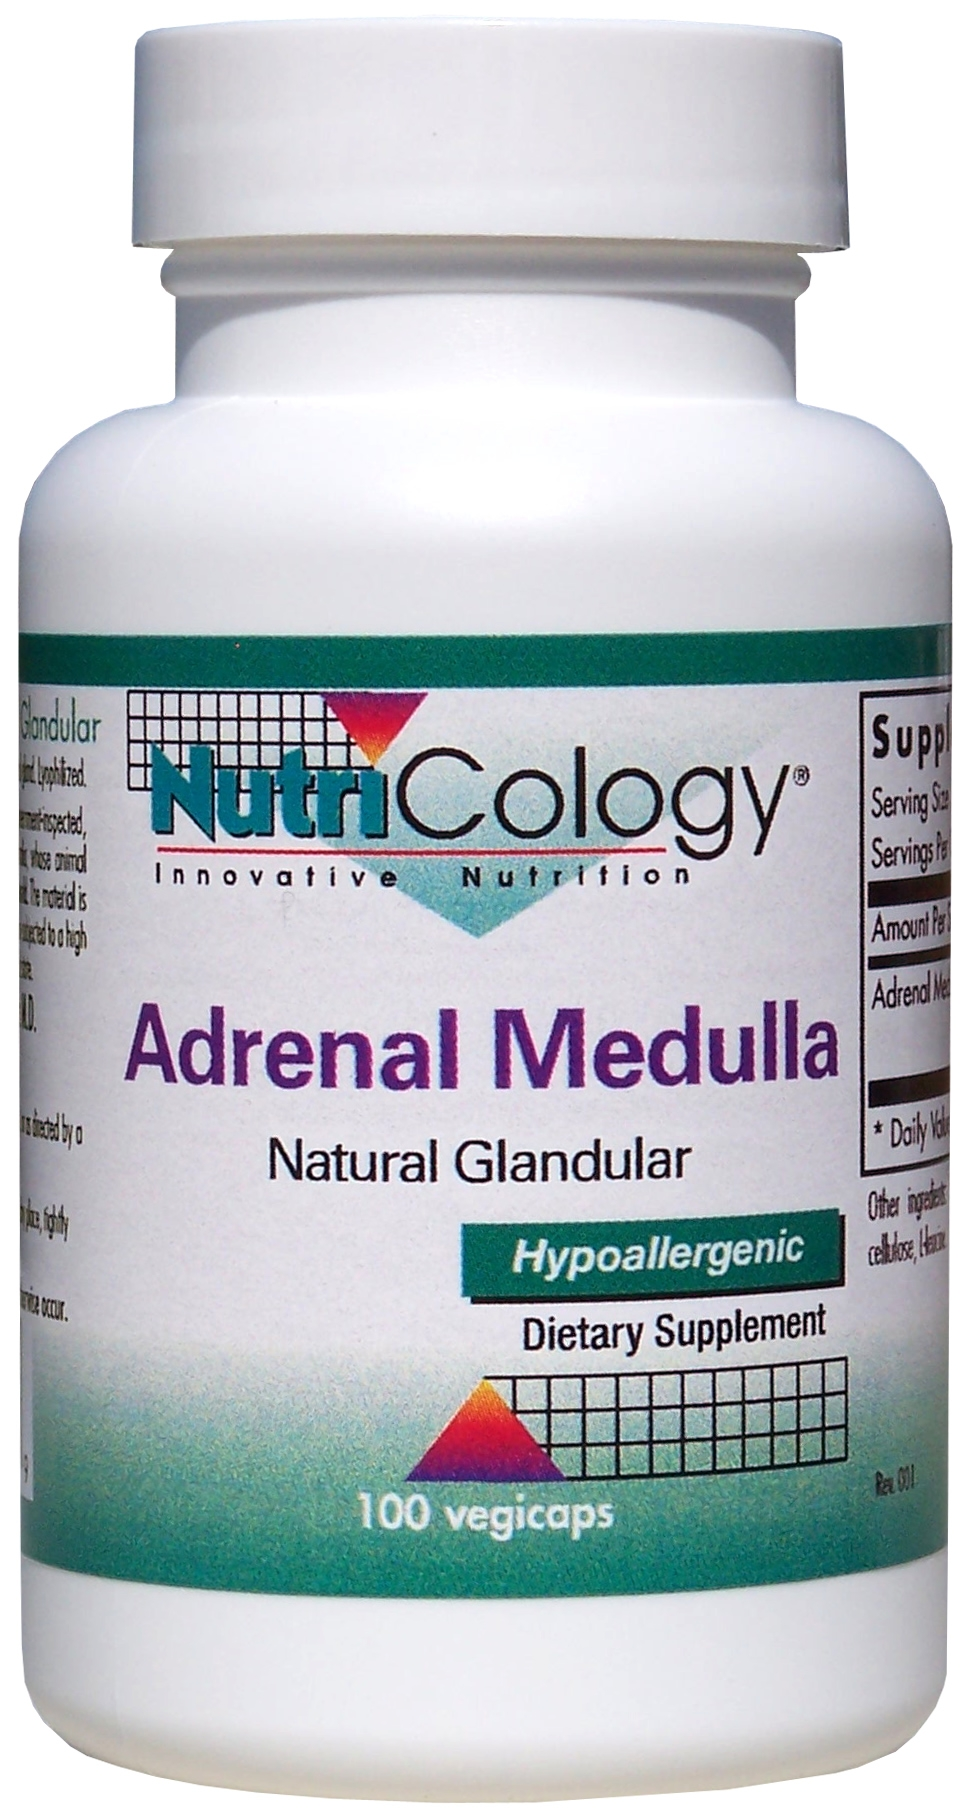 Adrenal Medulla Natural Glandular 100 Vegicaps by Nutricology